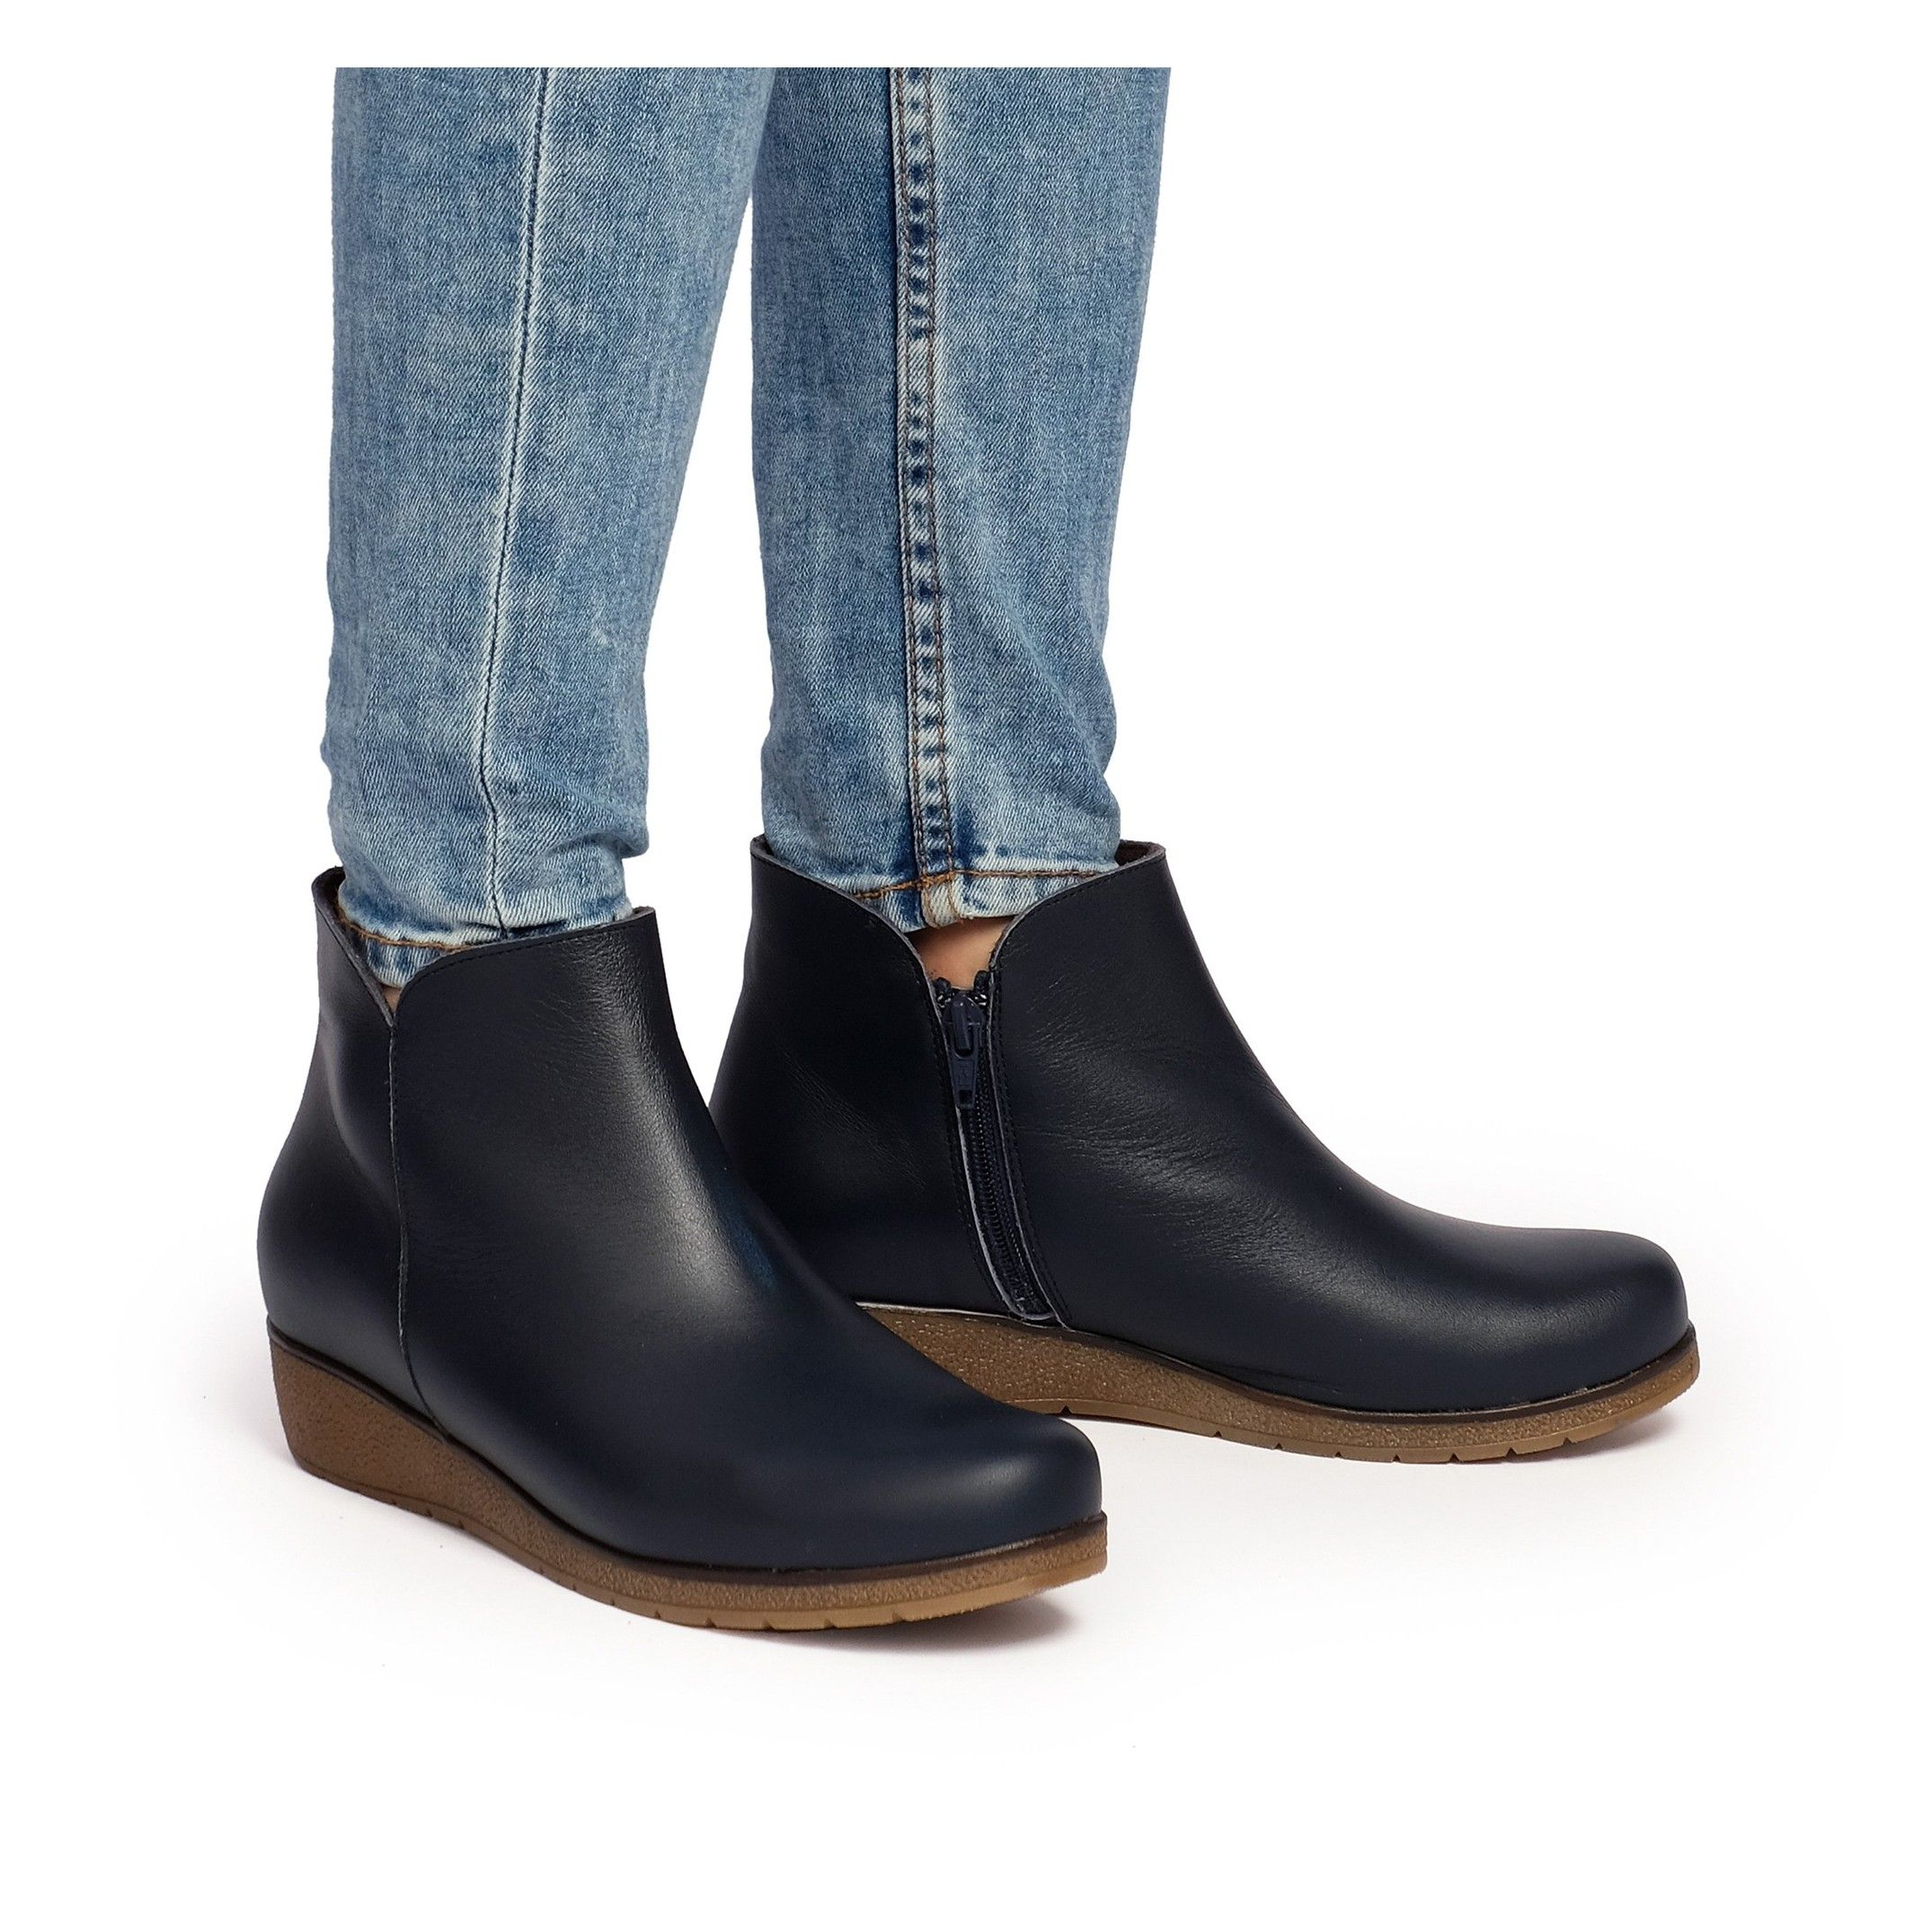 Castellanisimos Leather Ankle Navy Blue Boot Women Winter Shoes